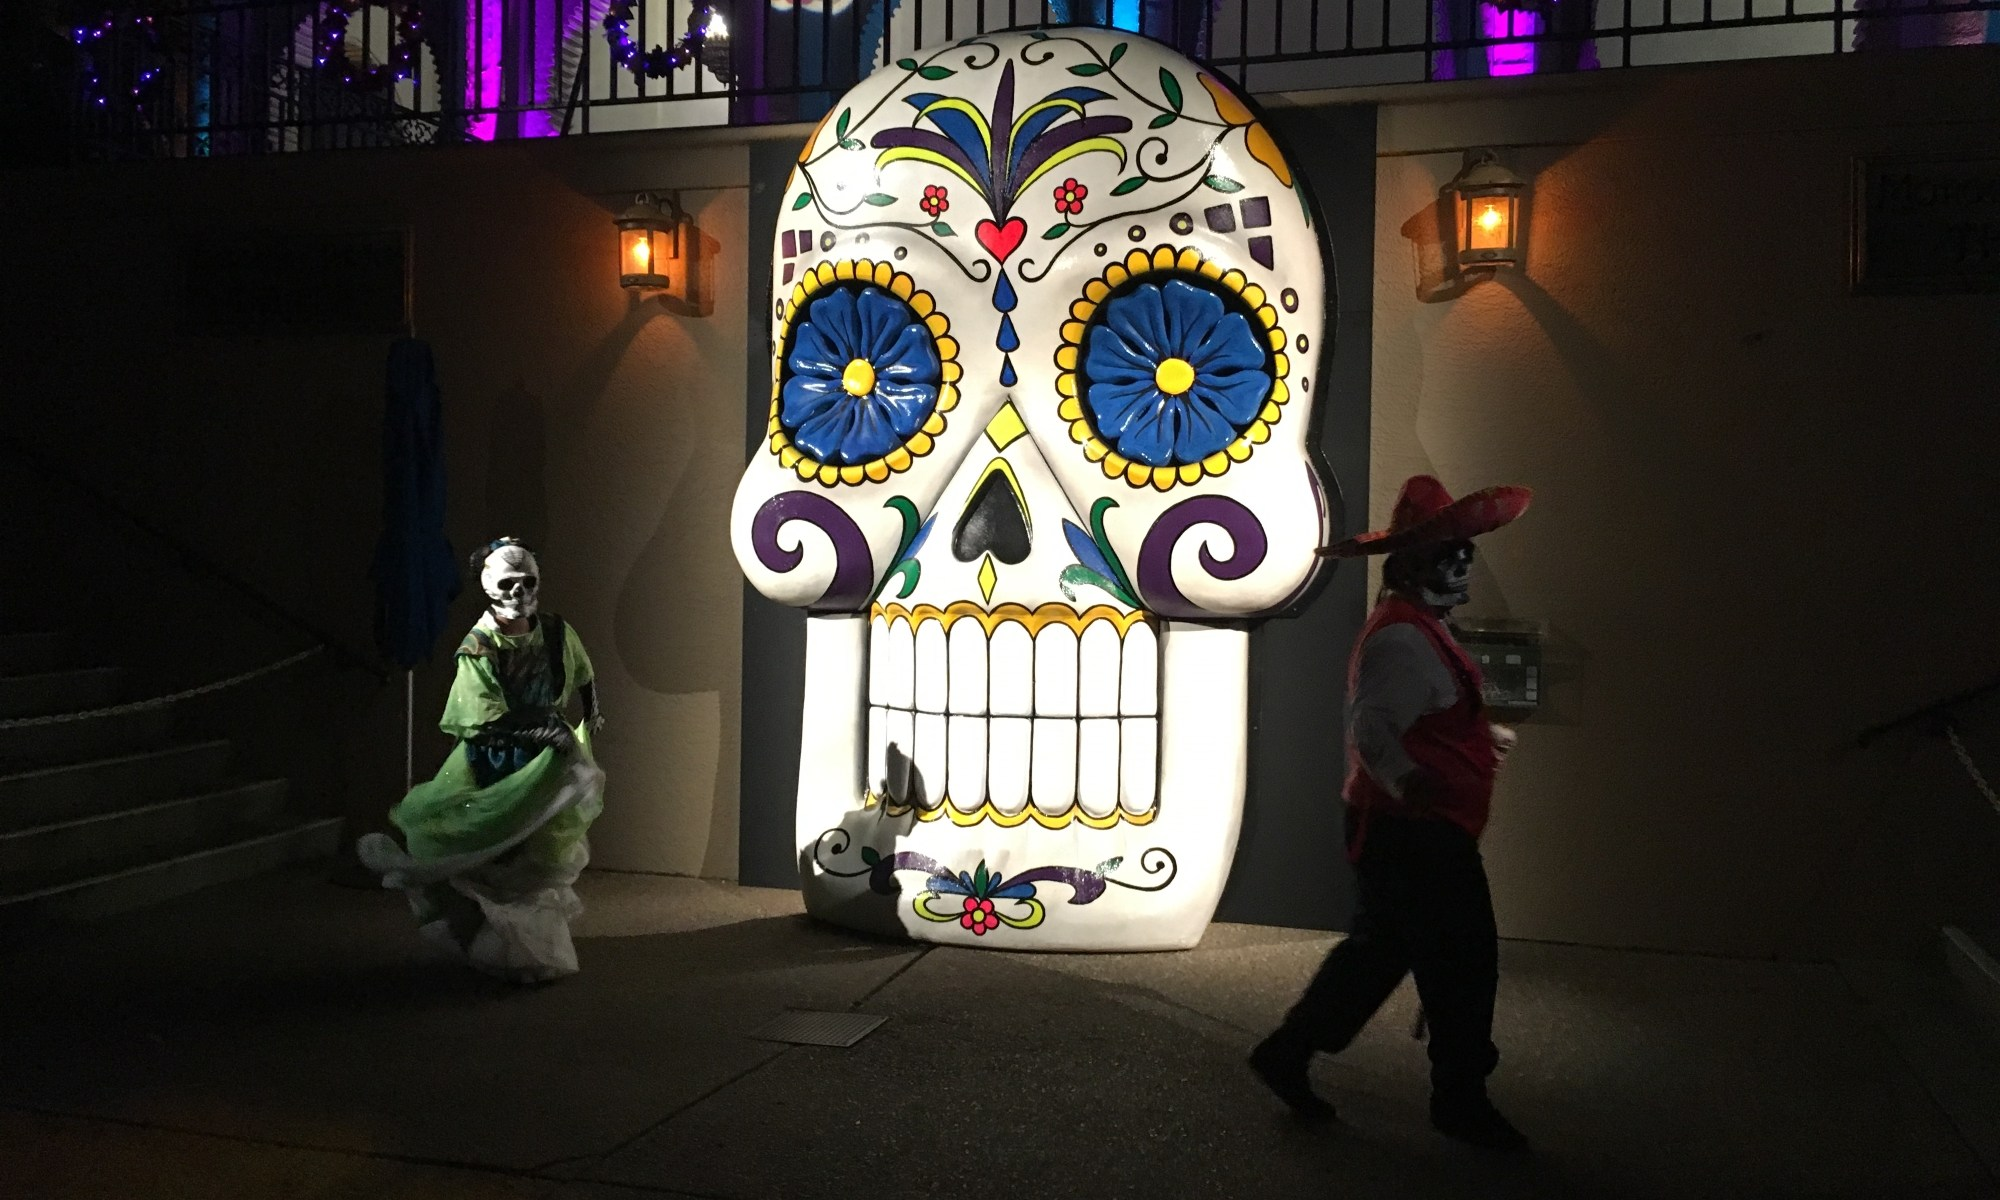 Image: Howl-O-Scream Day of Dead characters with giant calavera